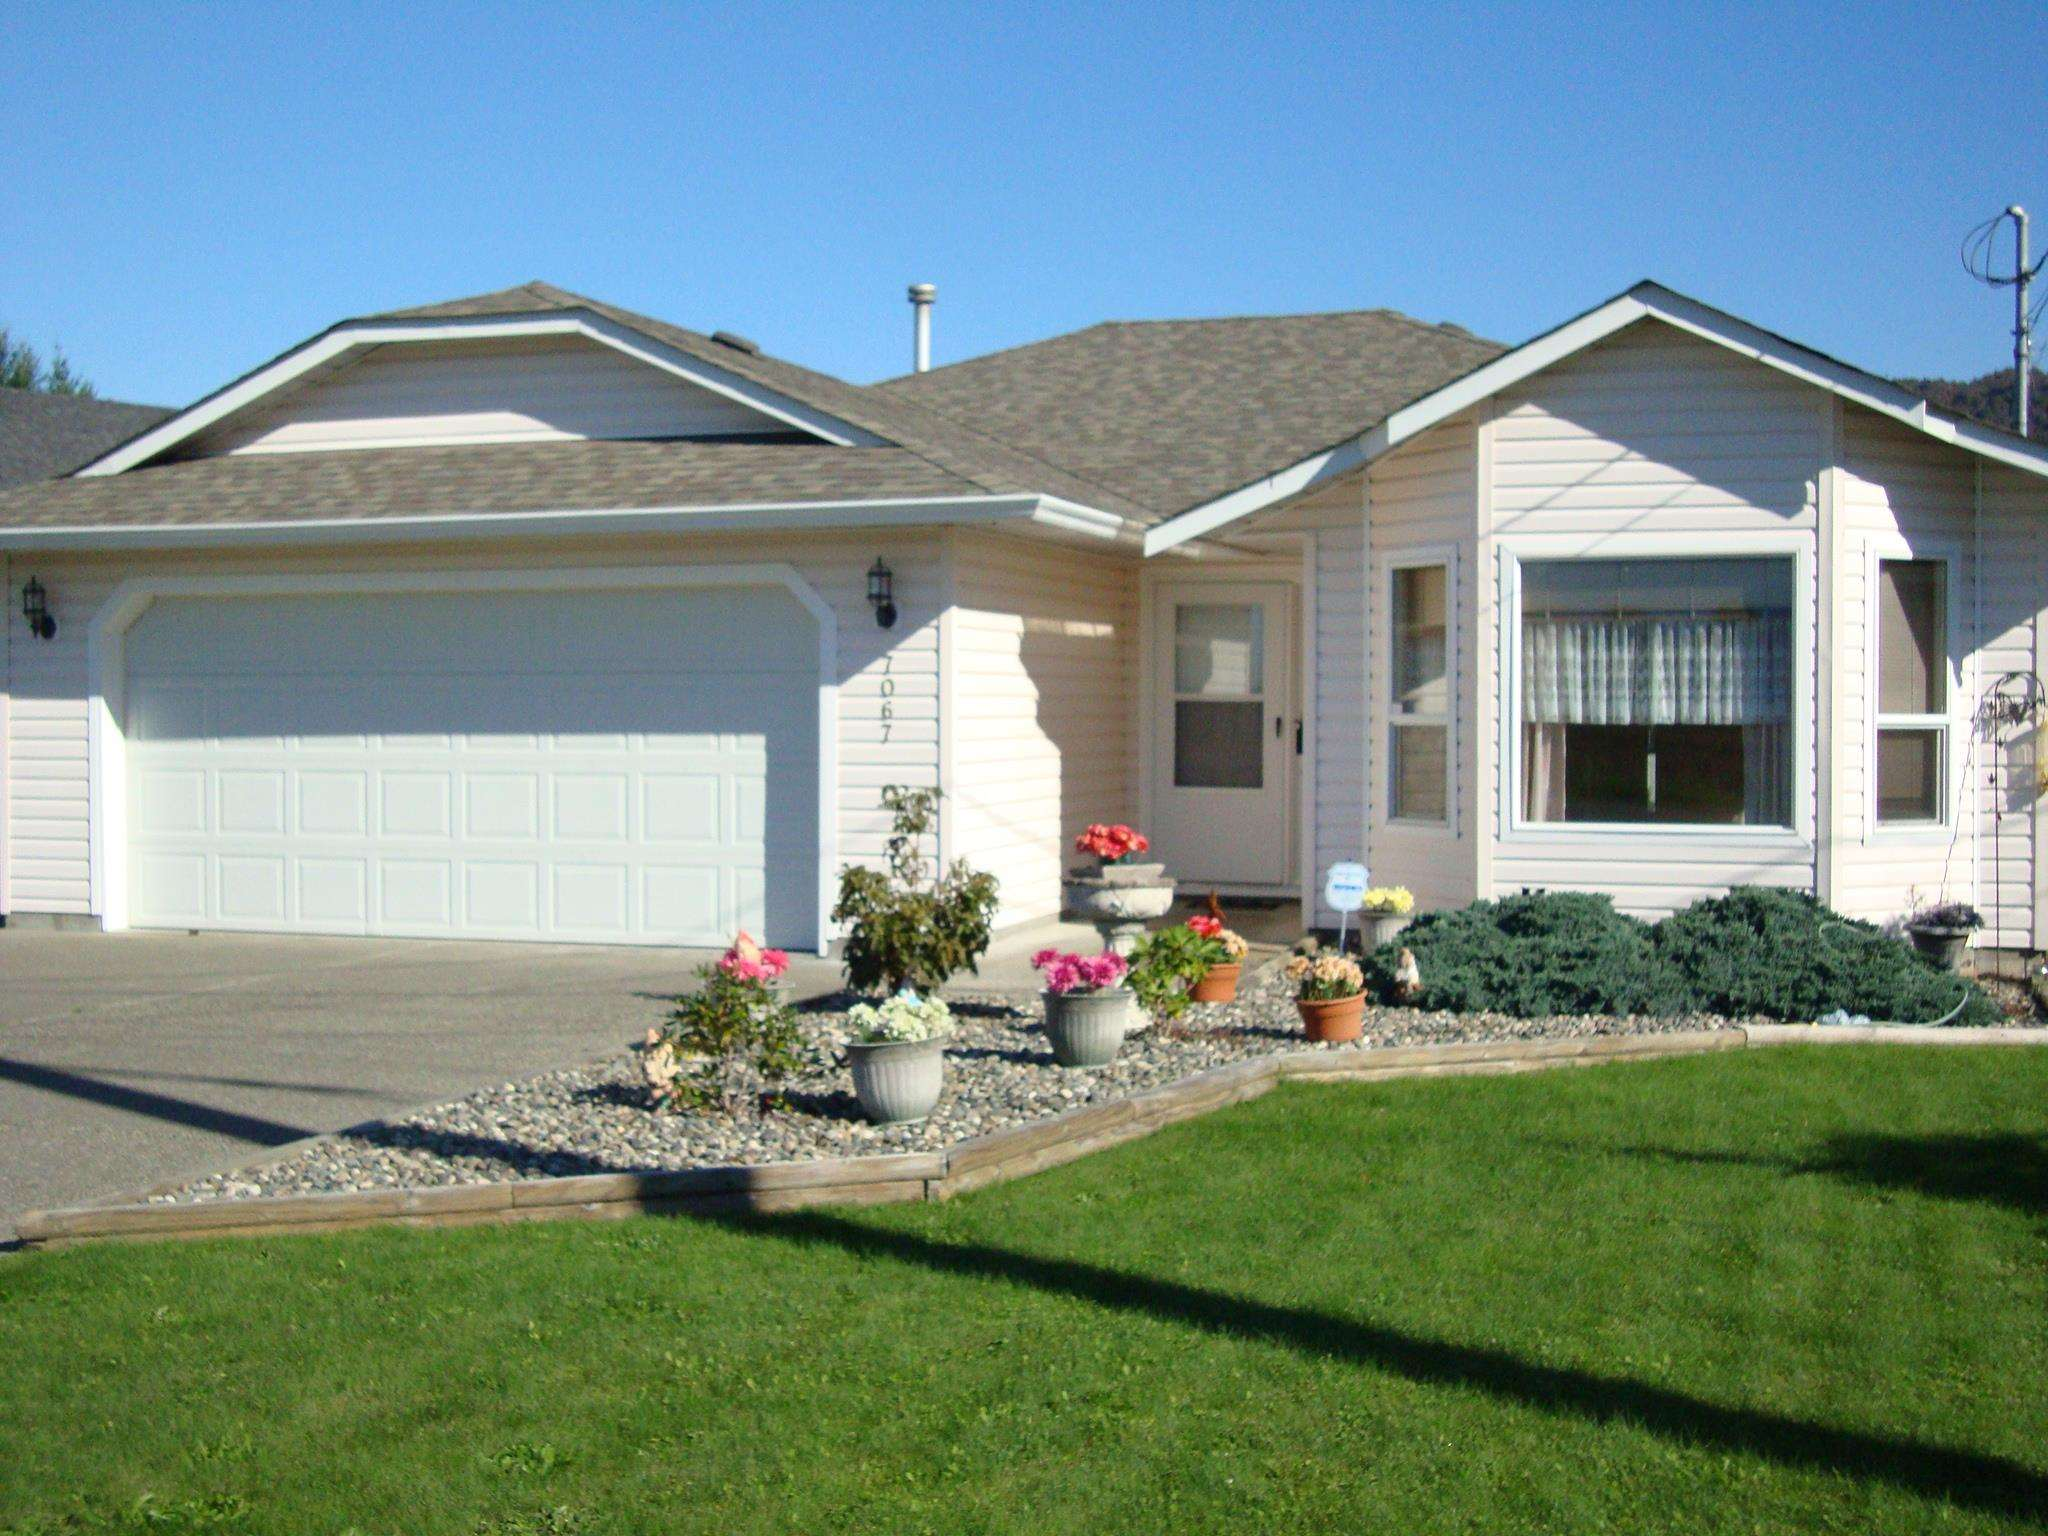 7067 MCDONALD ROAD - Agassiz House/Single Family for sale, 2 Bedrooms (R2602467) - #1